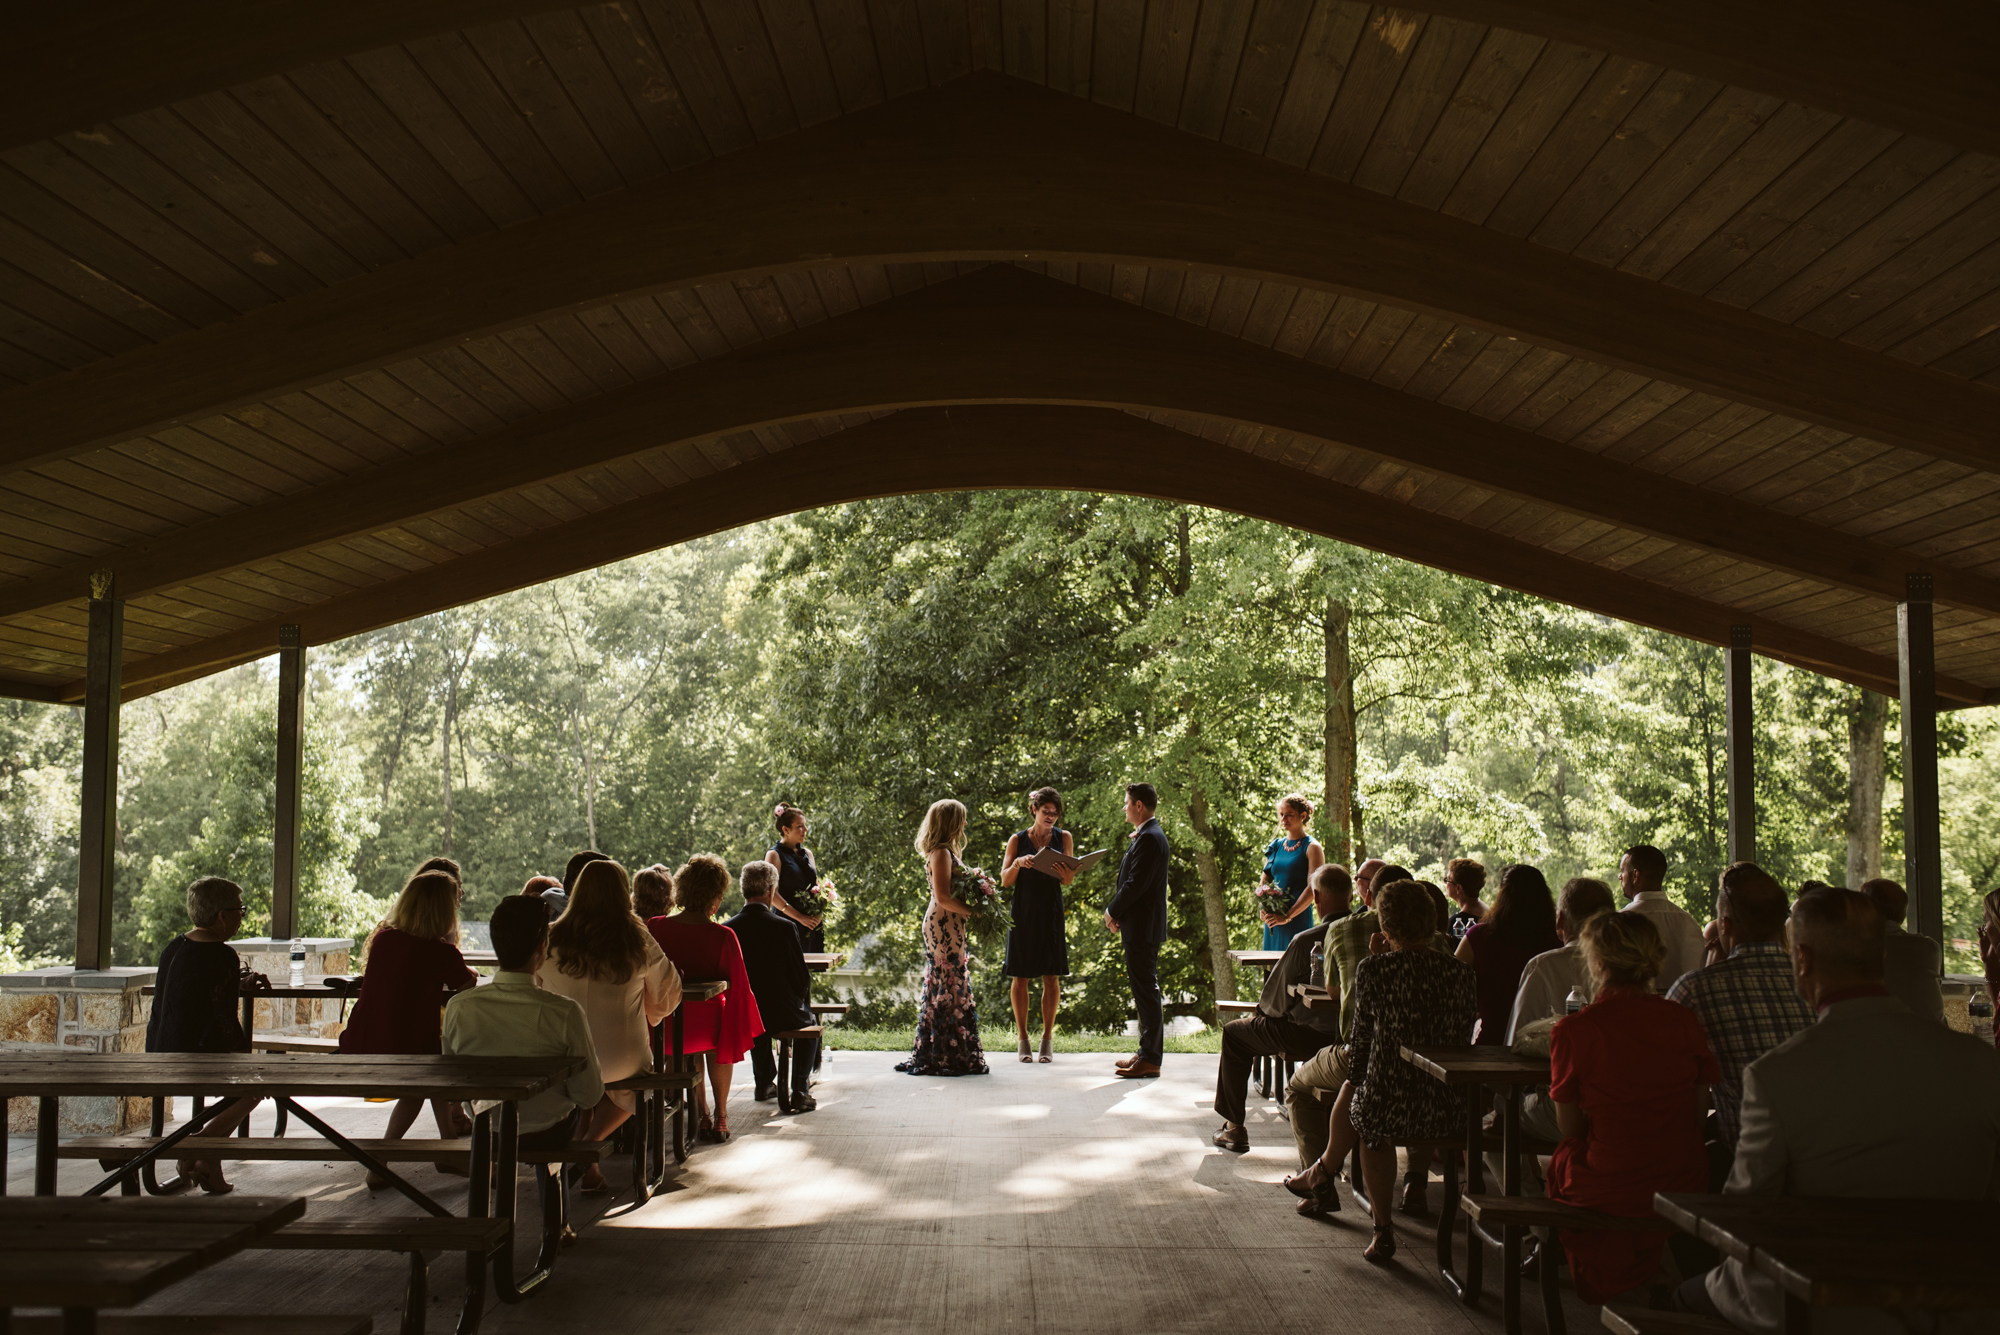 Pop-up Ceremony, Outdoor Wedding, Casual, Simple, Lake Roland, Baltimore, Maryland Wedding Photographer, Laid Back, DIY, Camp Pavilion Wedding, Nature, Ceremony Photo